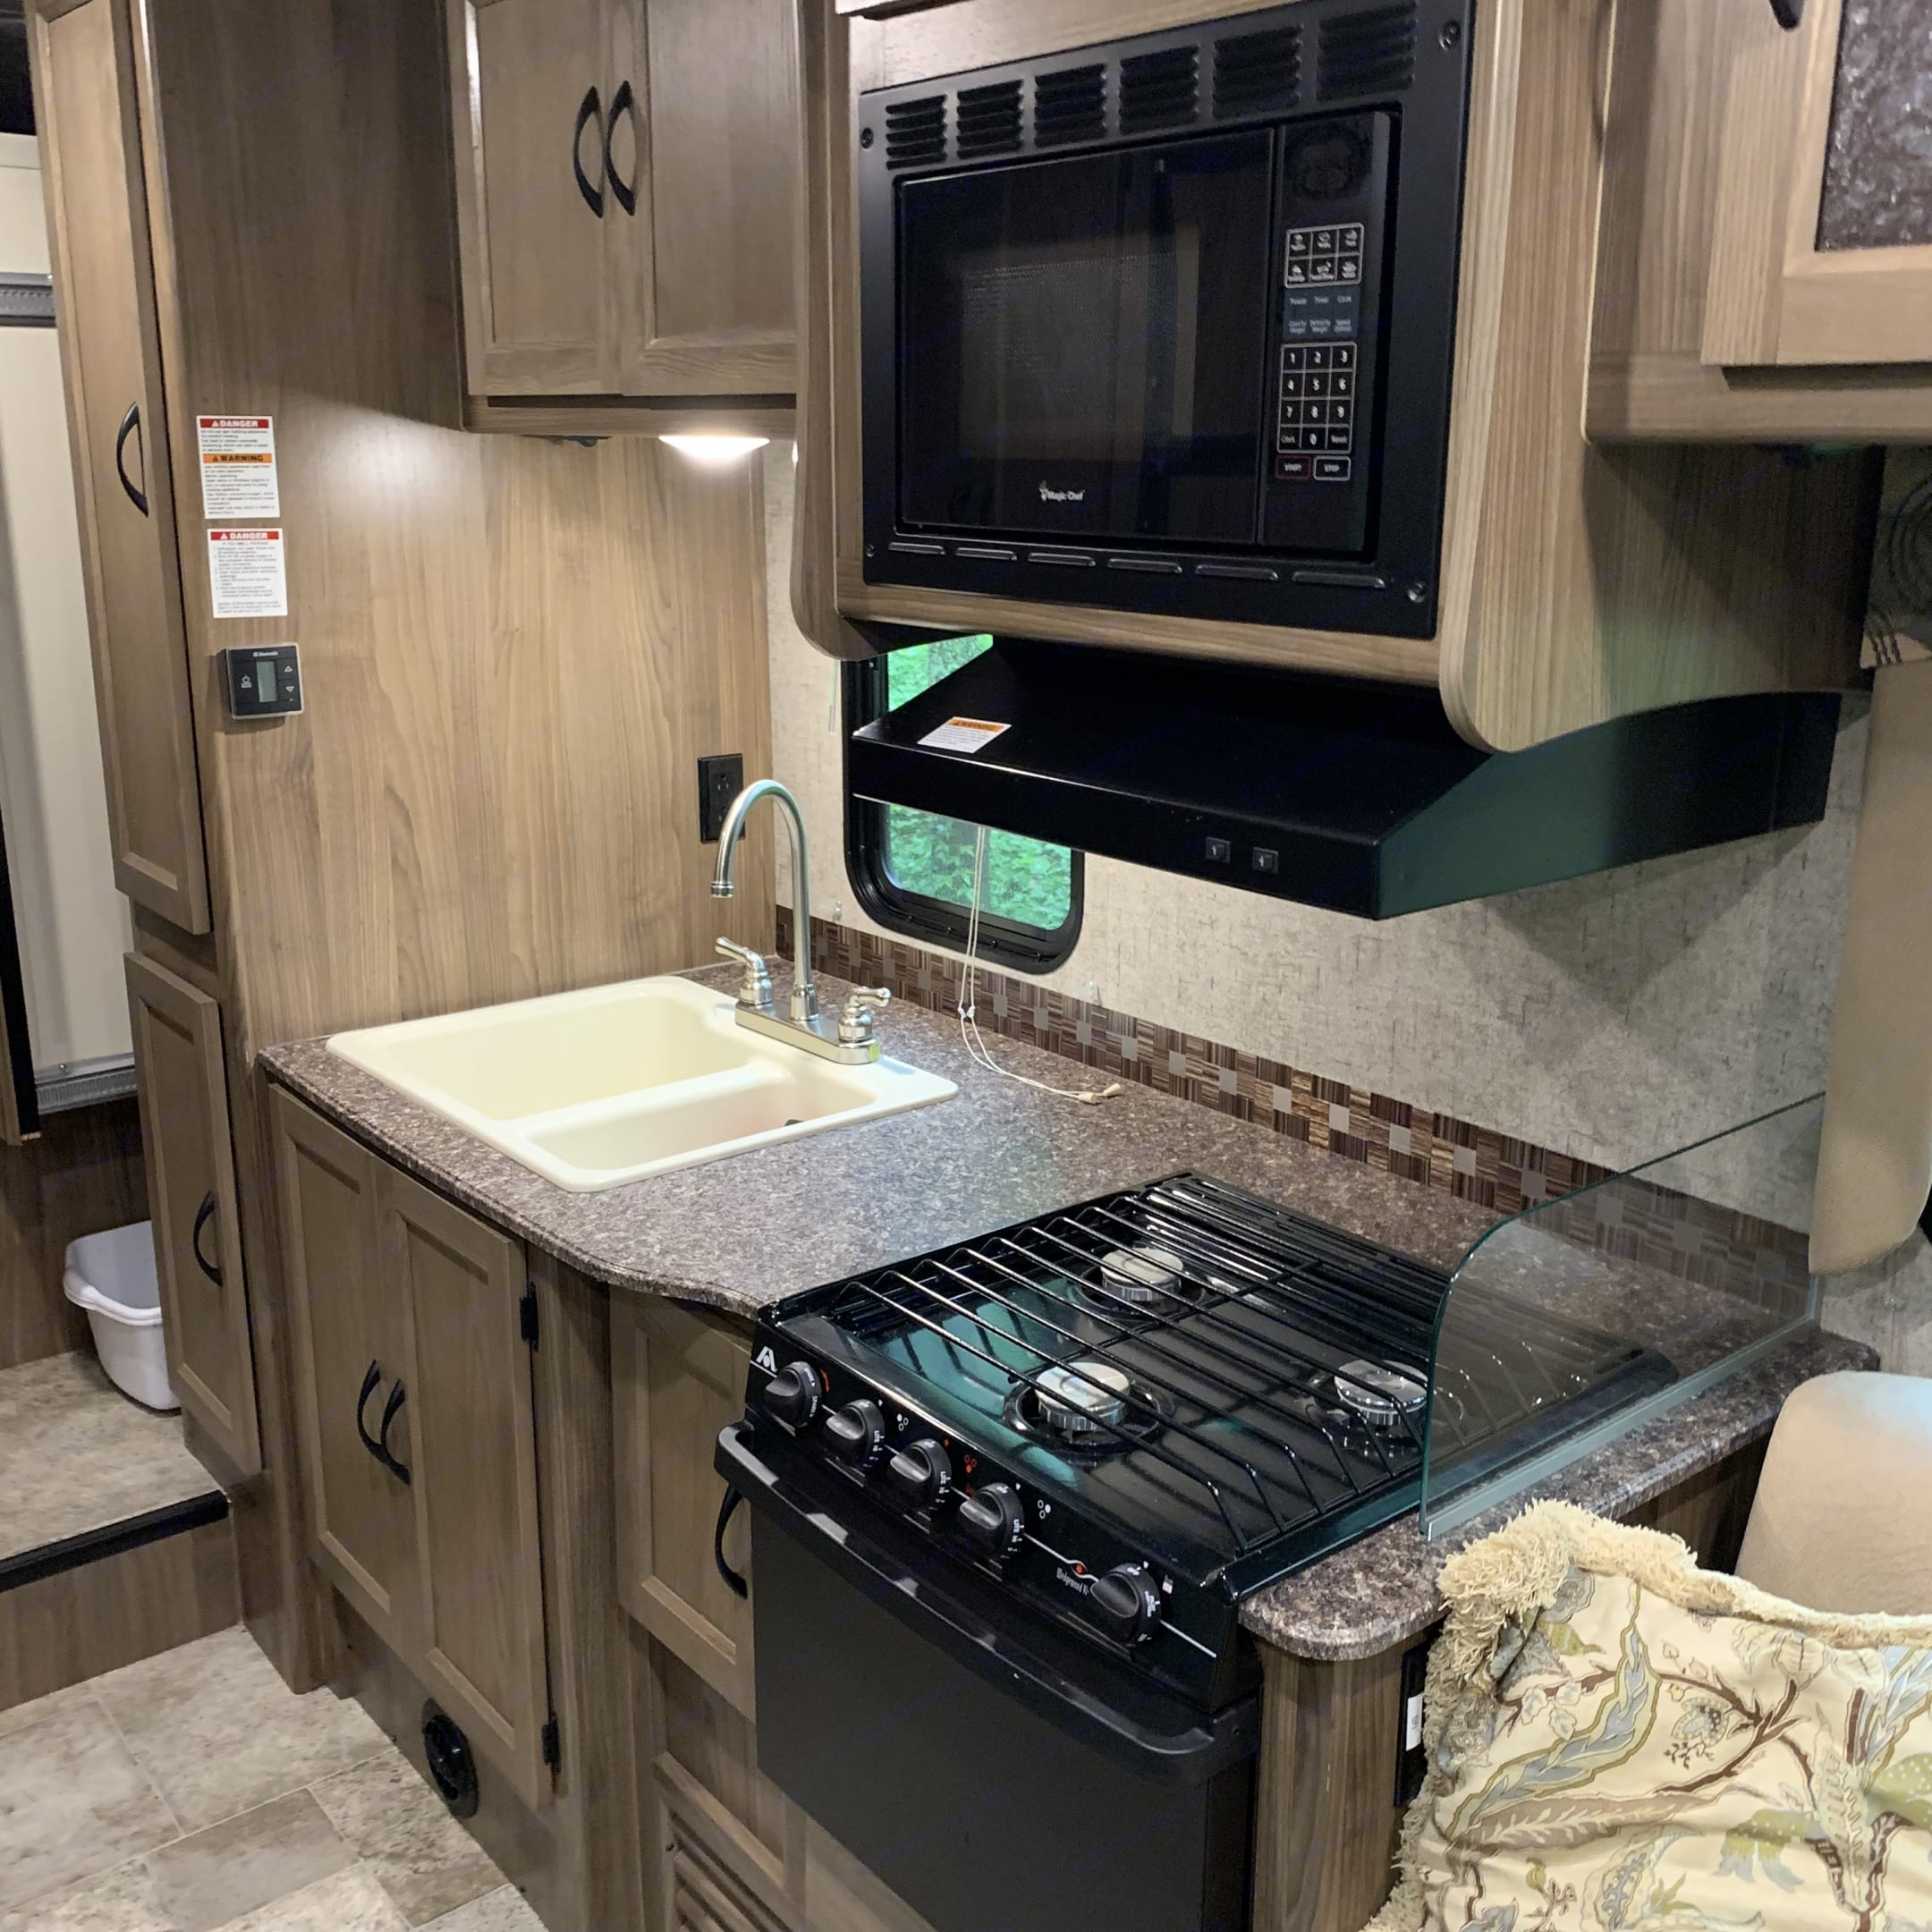 Double sink, microwave, 3 burner stove, oven, pantry, tons of empty storage for your food!. Coachmen Freelander 2017